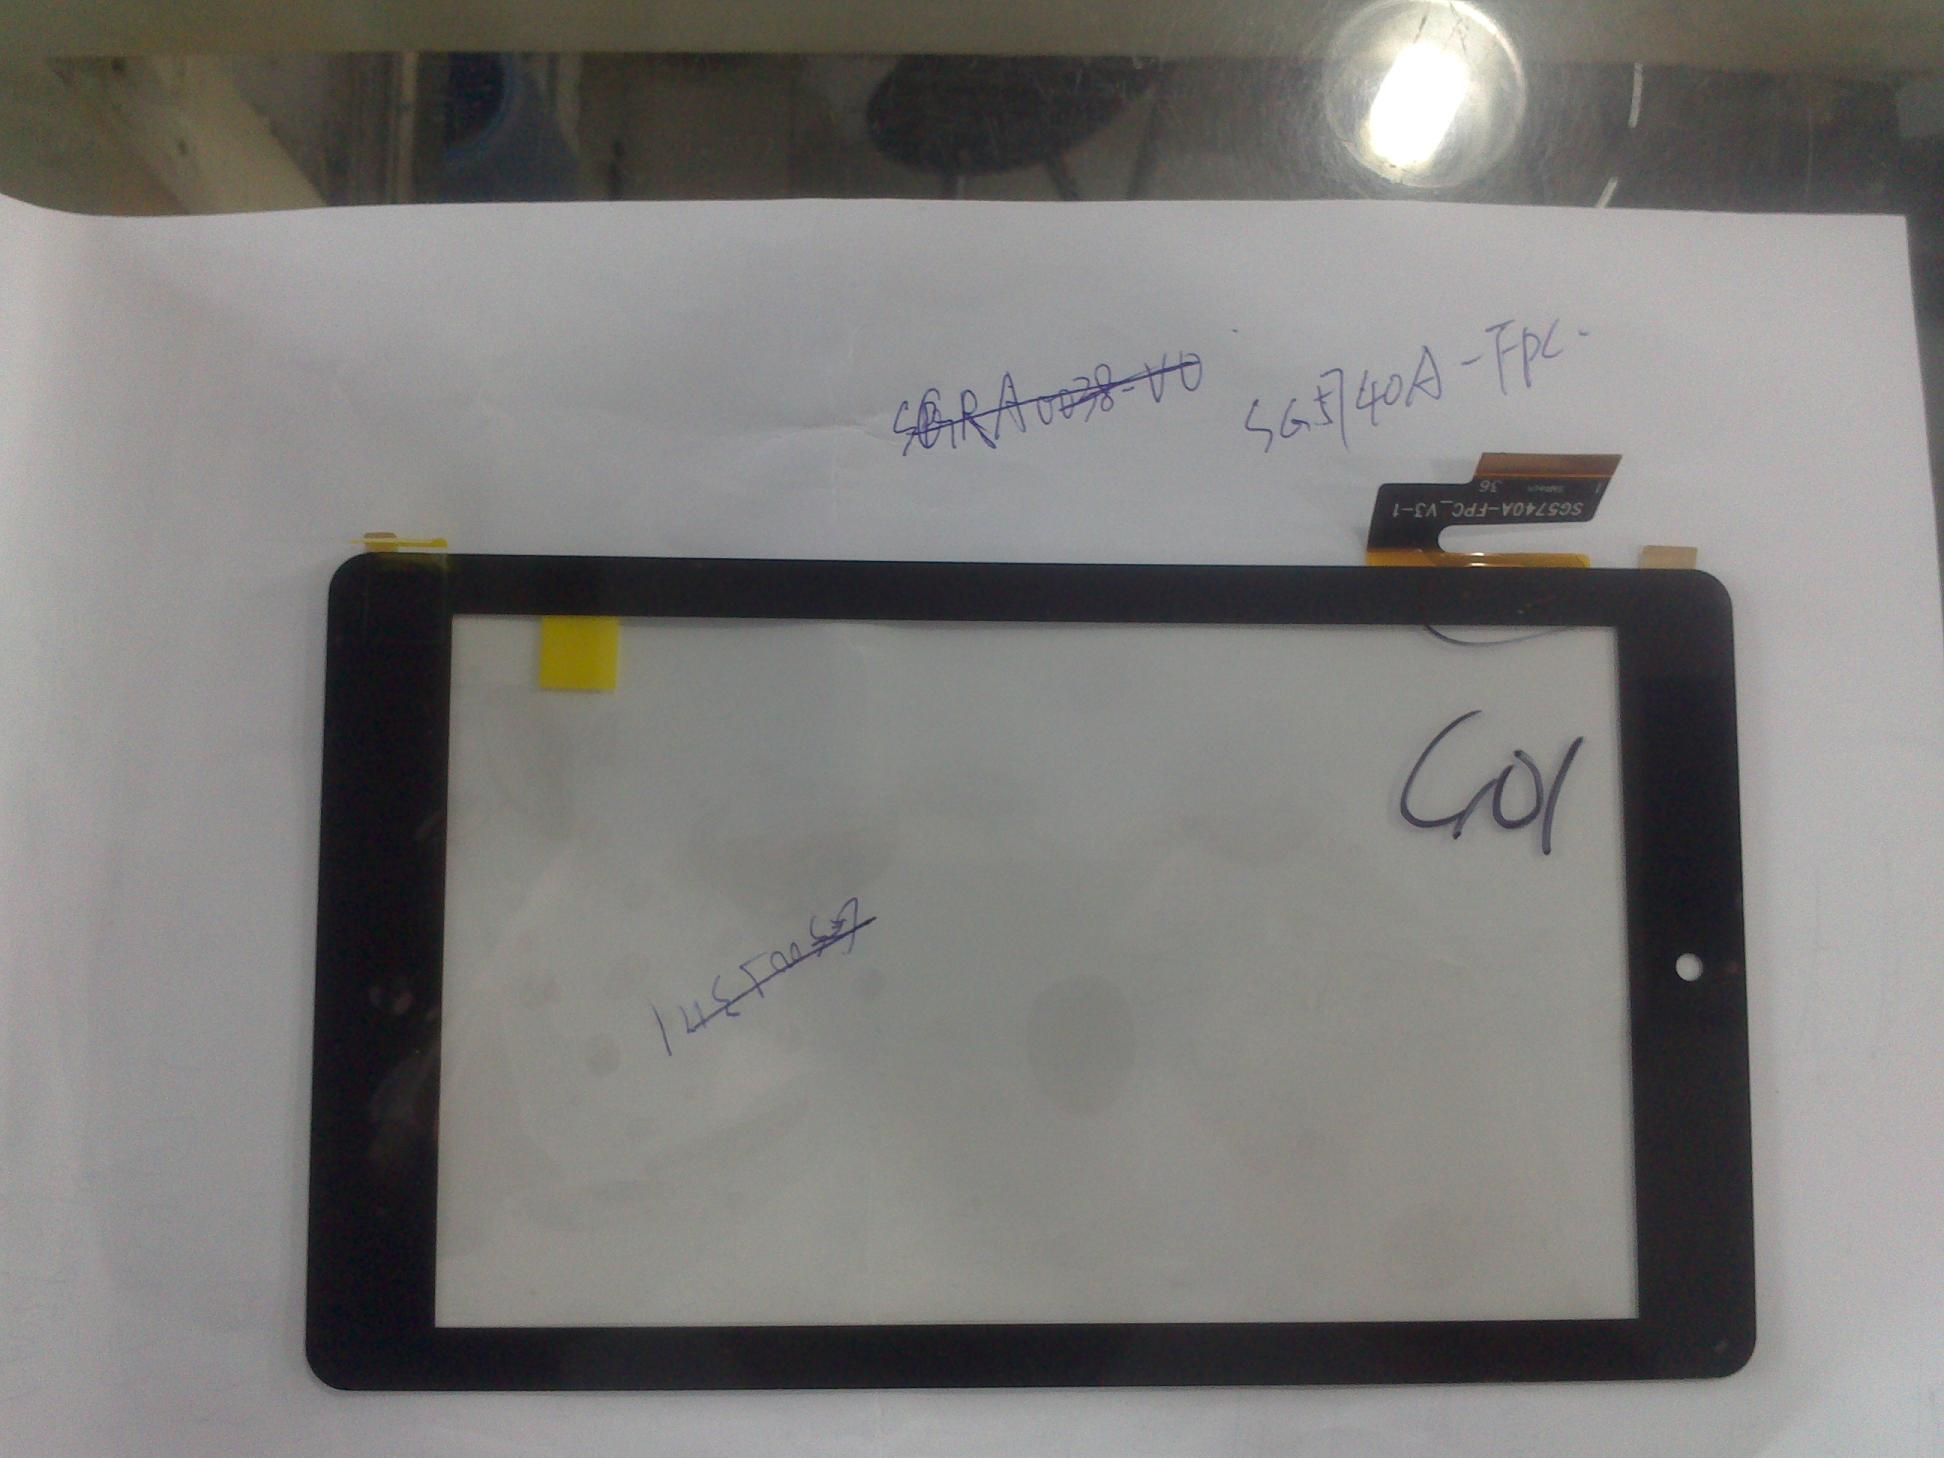 Запчасти для мобильных телефонов 7 inch new handwriting Tablet capacitive touch screen screen screen number is sg5740a/fpc_v3/1 SG5740A-FPC_V3-1 new tpc 120h ecme touch screen